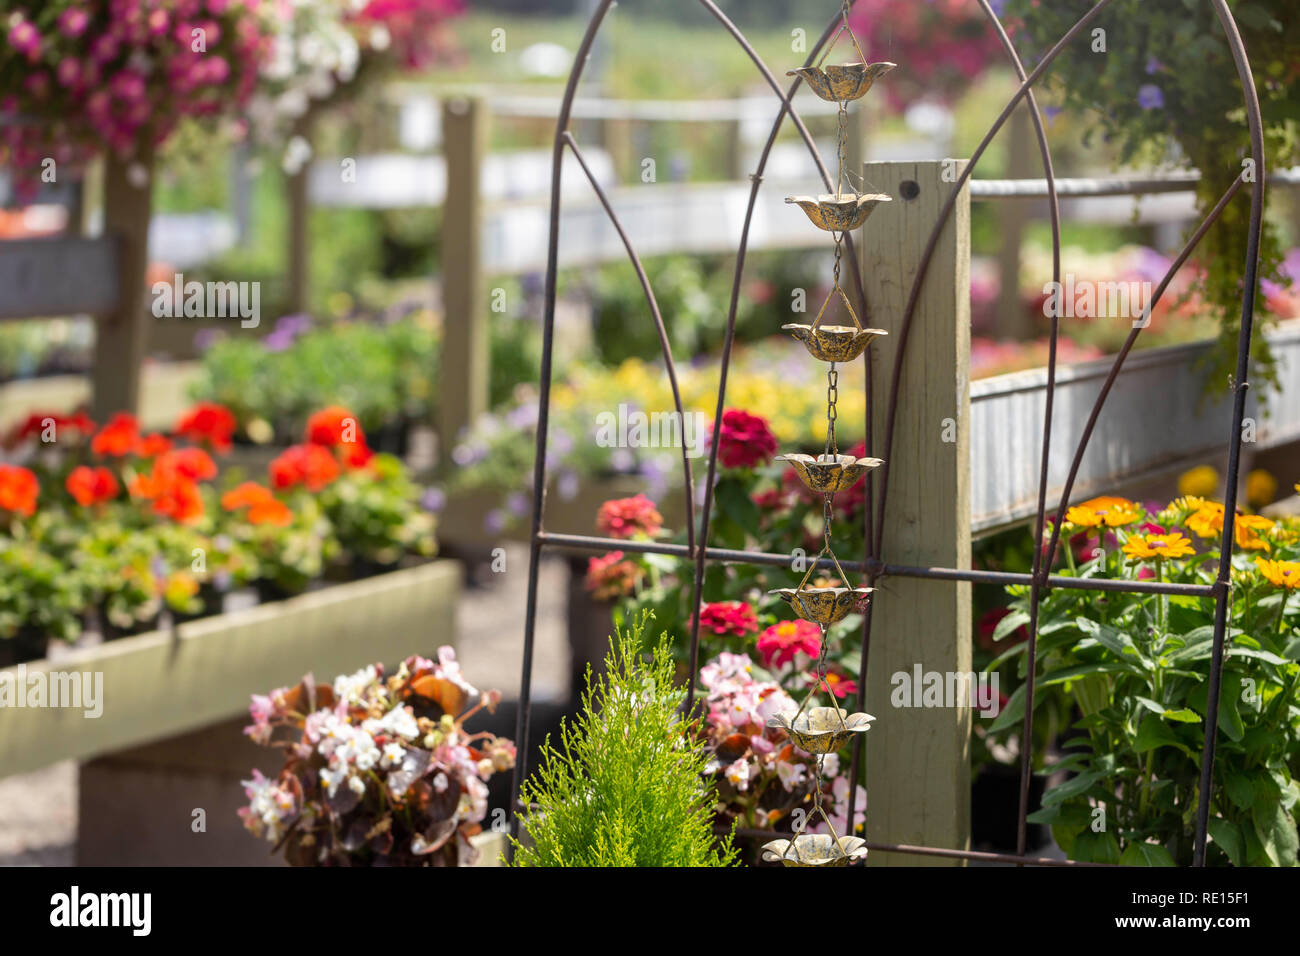 Rows of plants displayed for sale in a summertime garden center Stock Photo